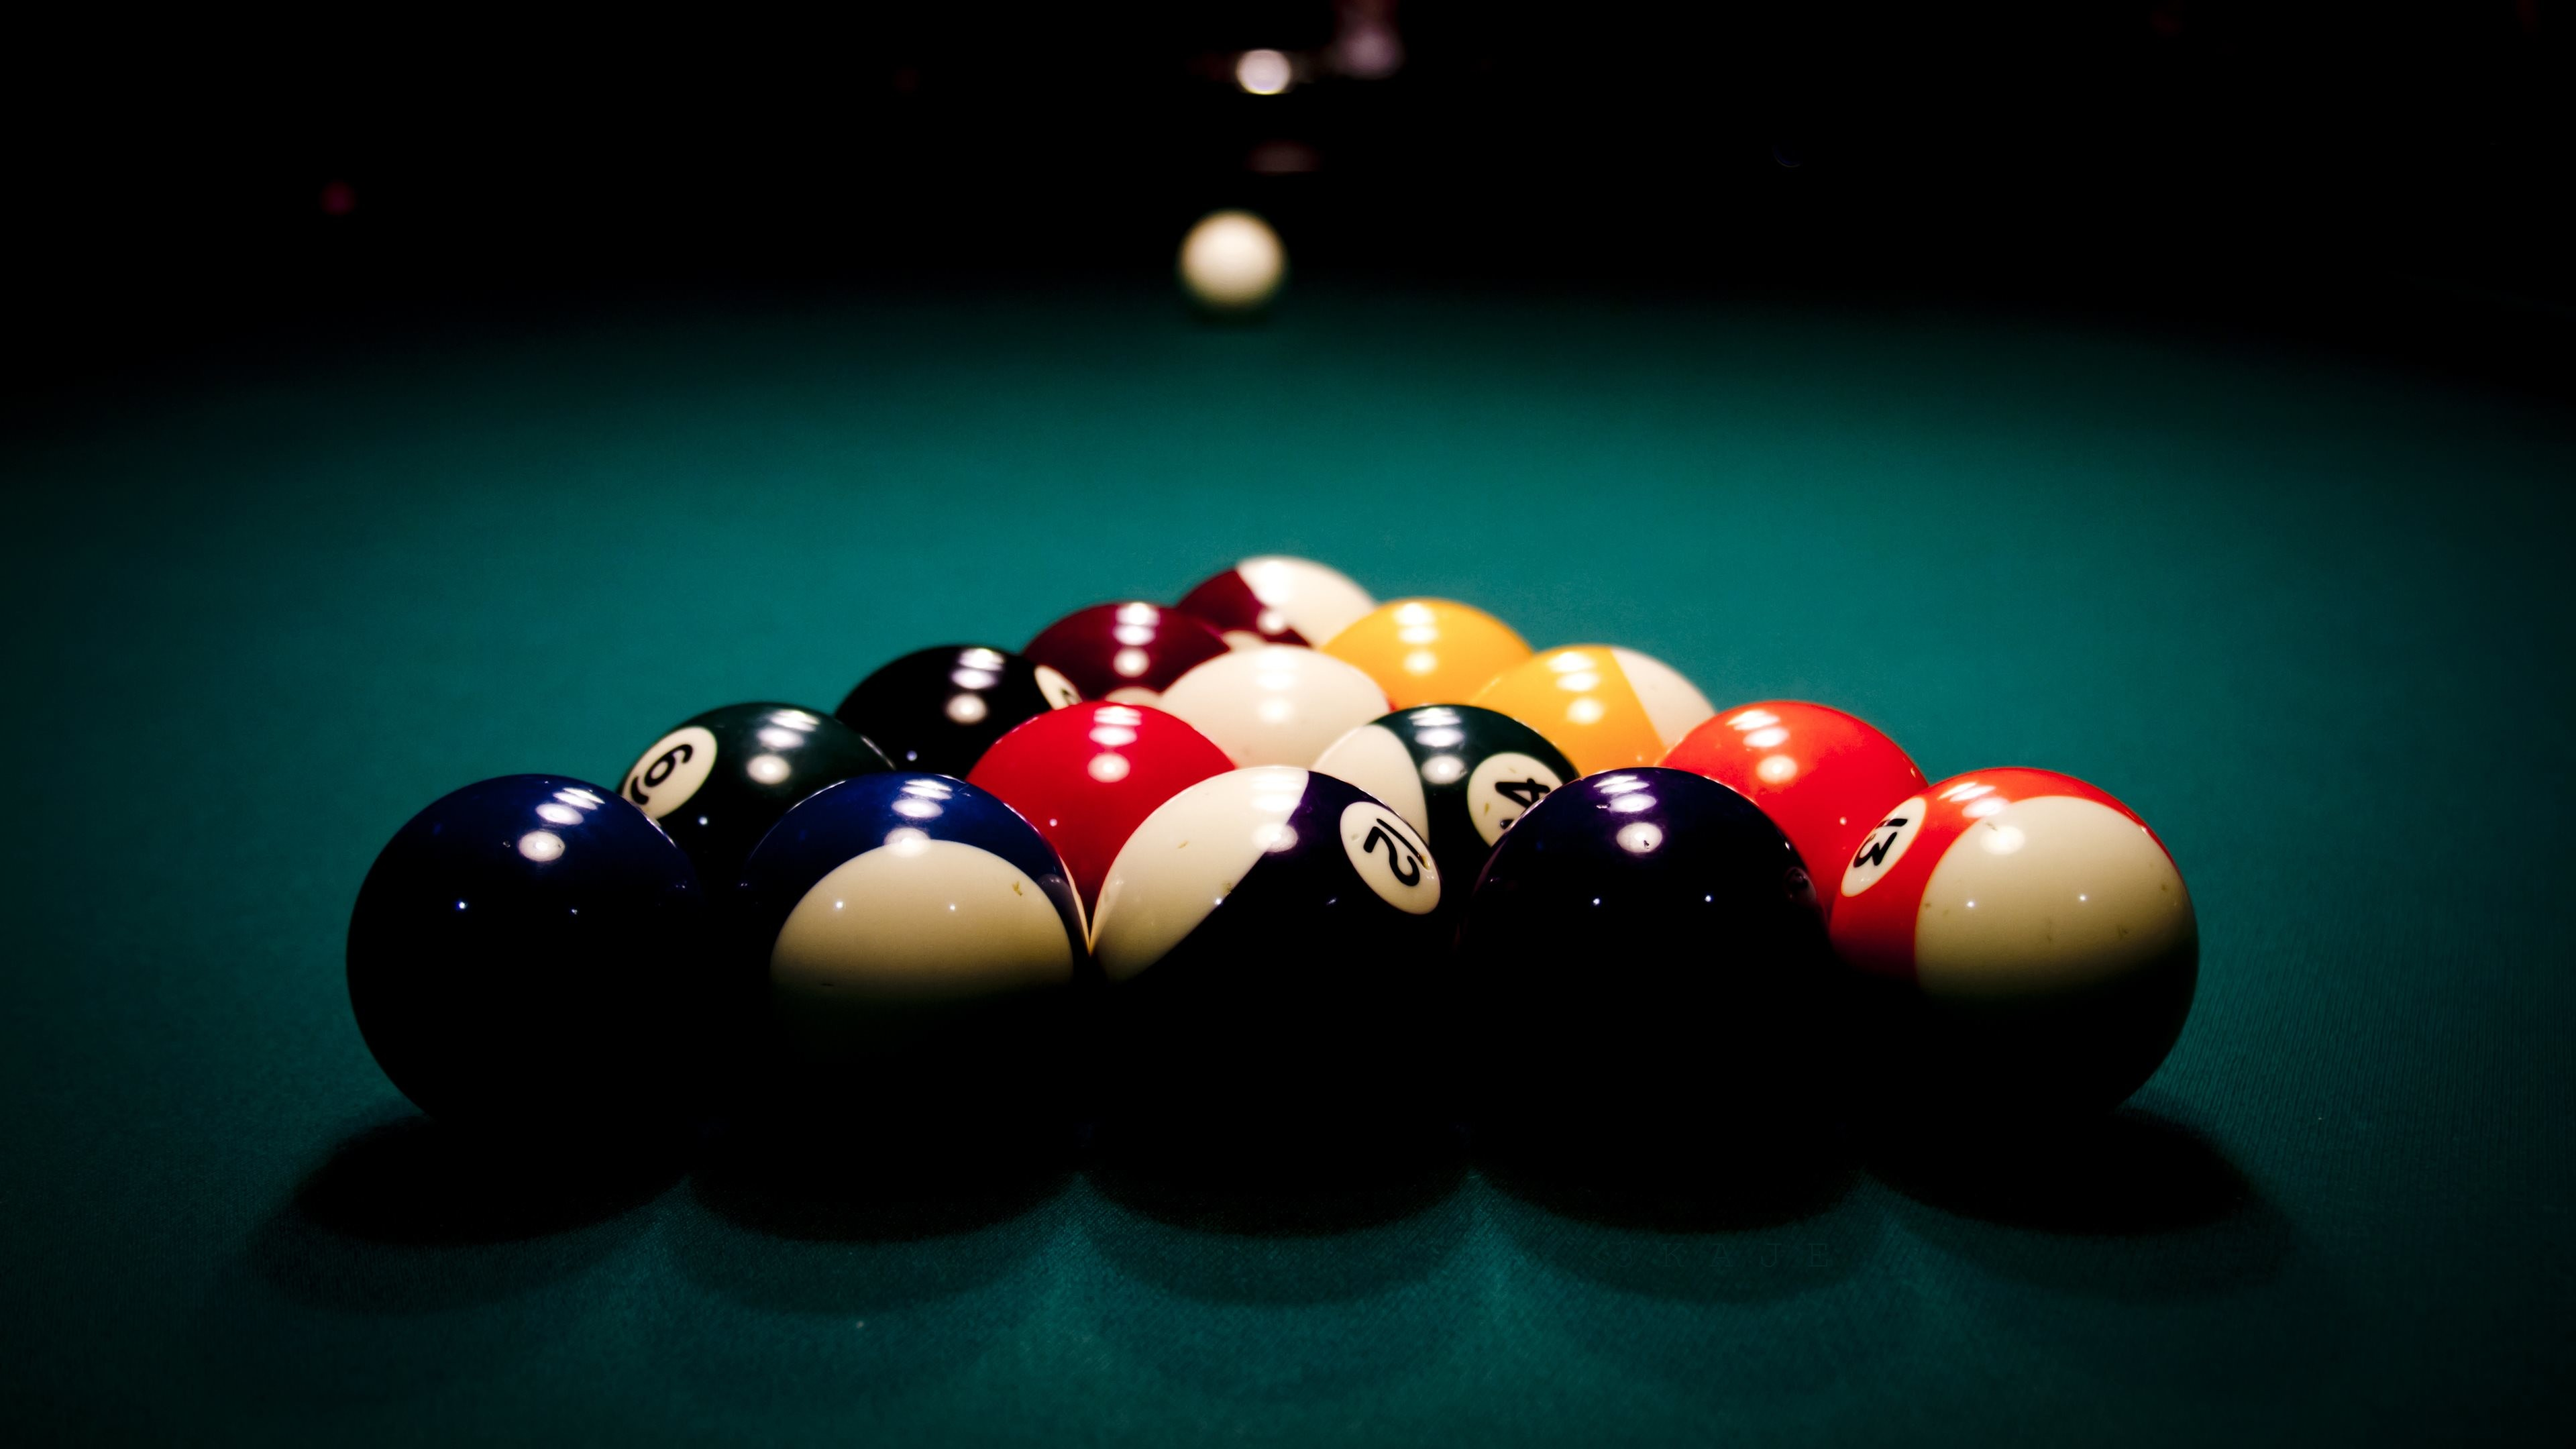 Snooker Wallpapers Find best latest Snooker Wallpapers for your PC desktop  background & mobile phones.